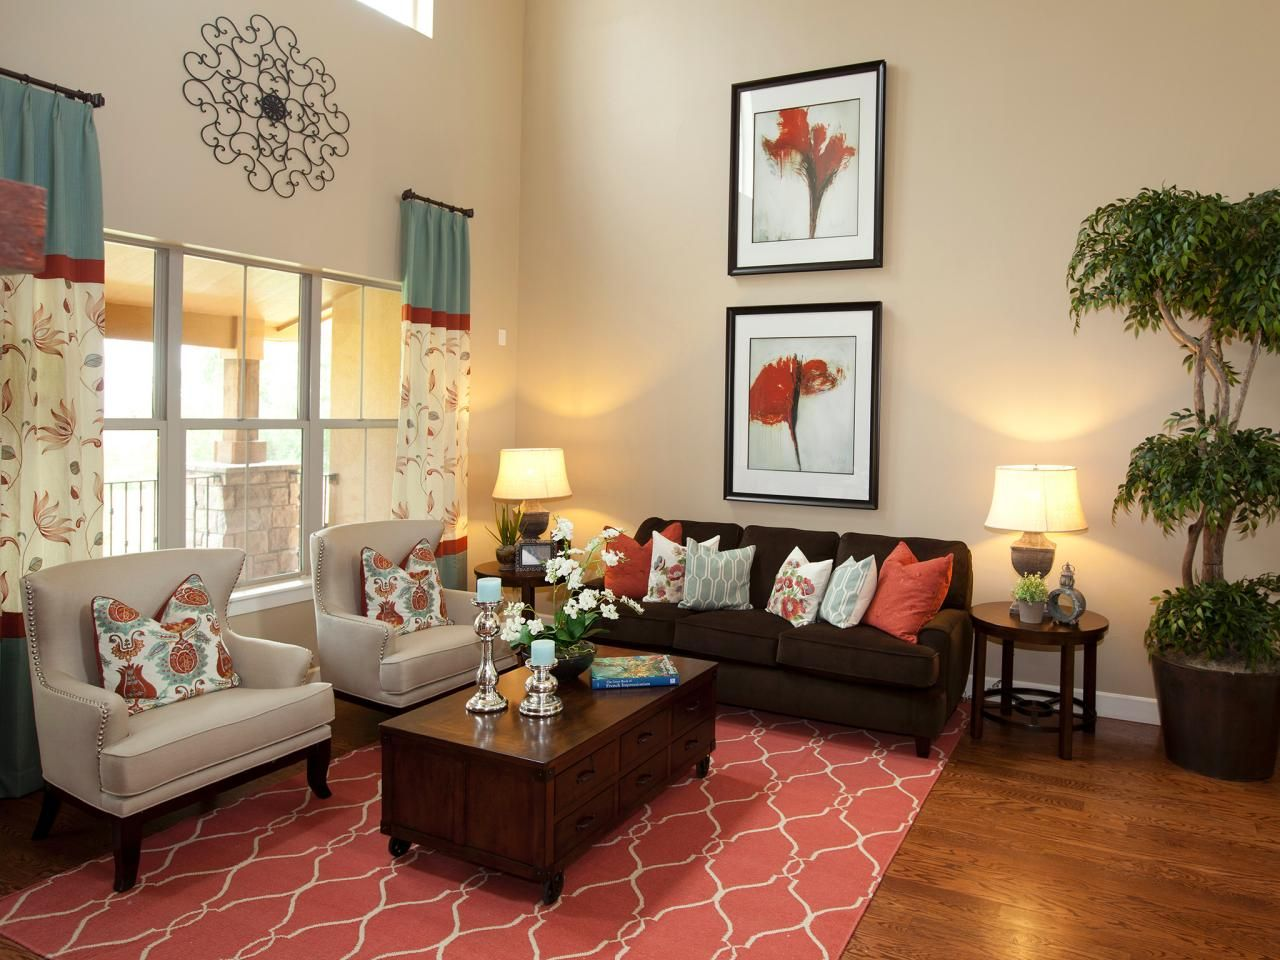 Best A Coral Colored Rug Pulls Together The Design In This 400 x 300